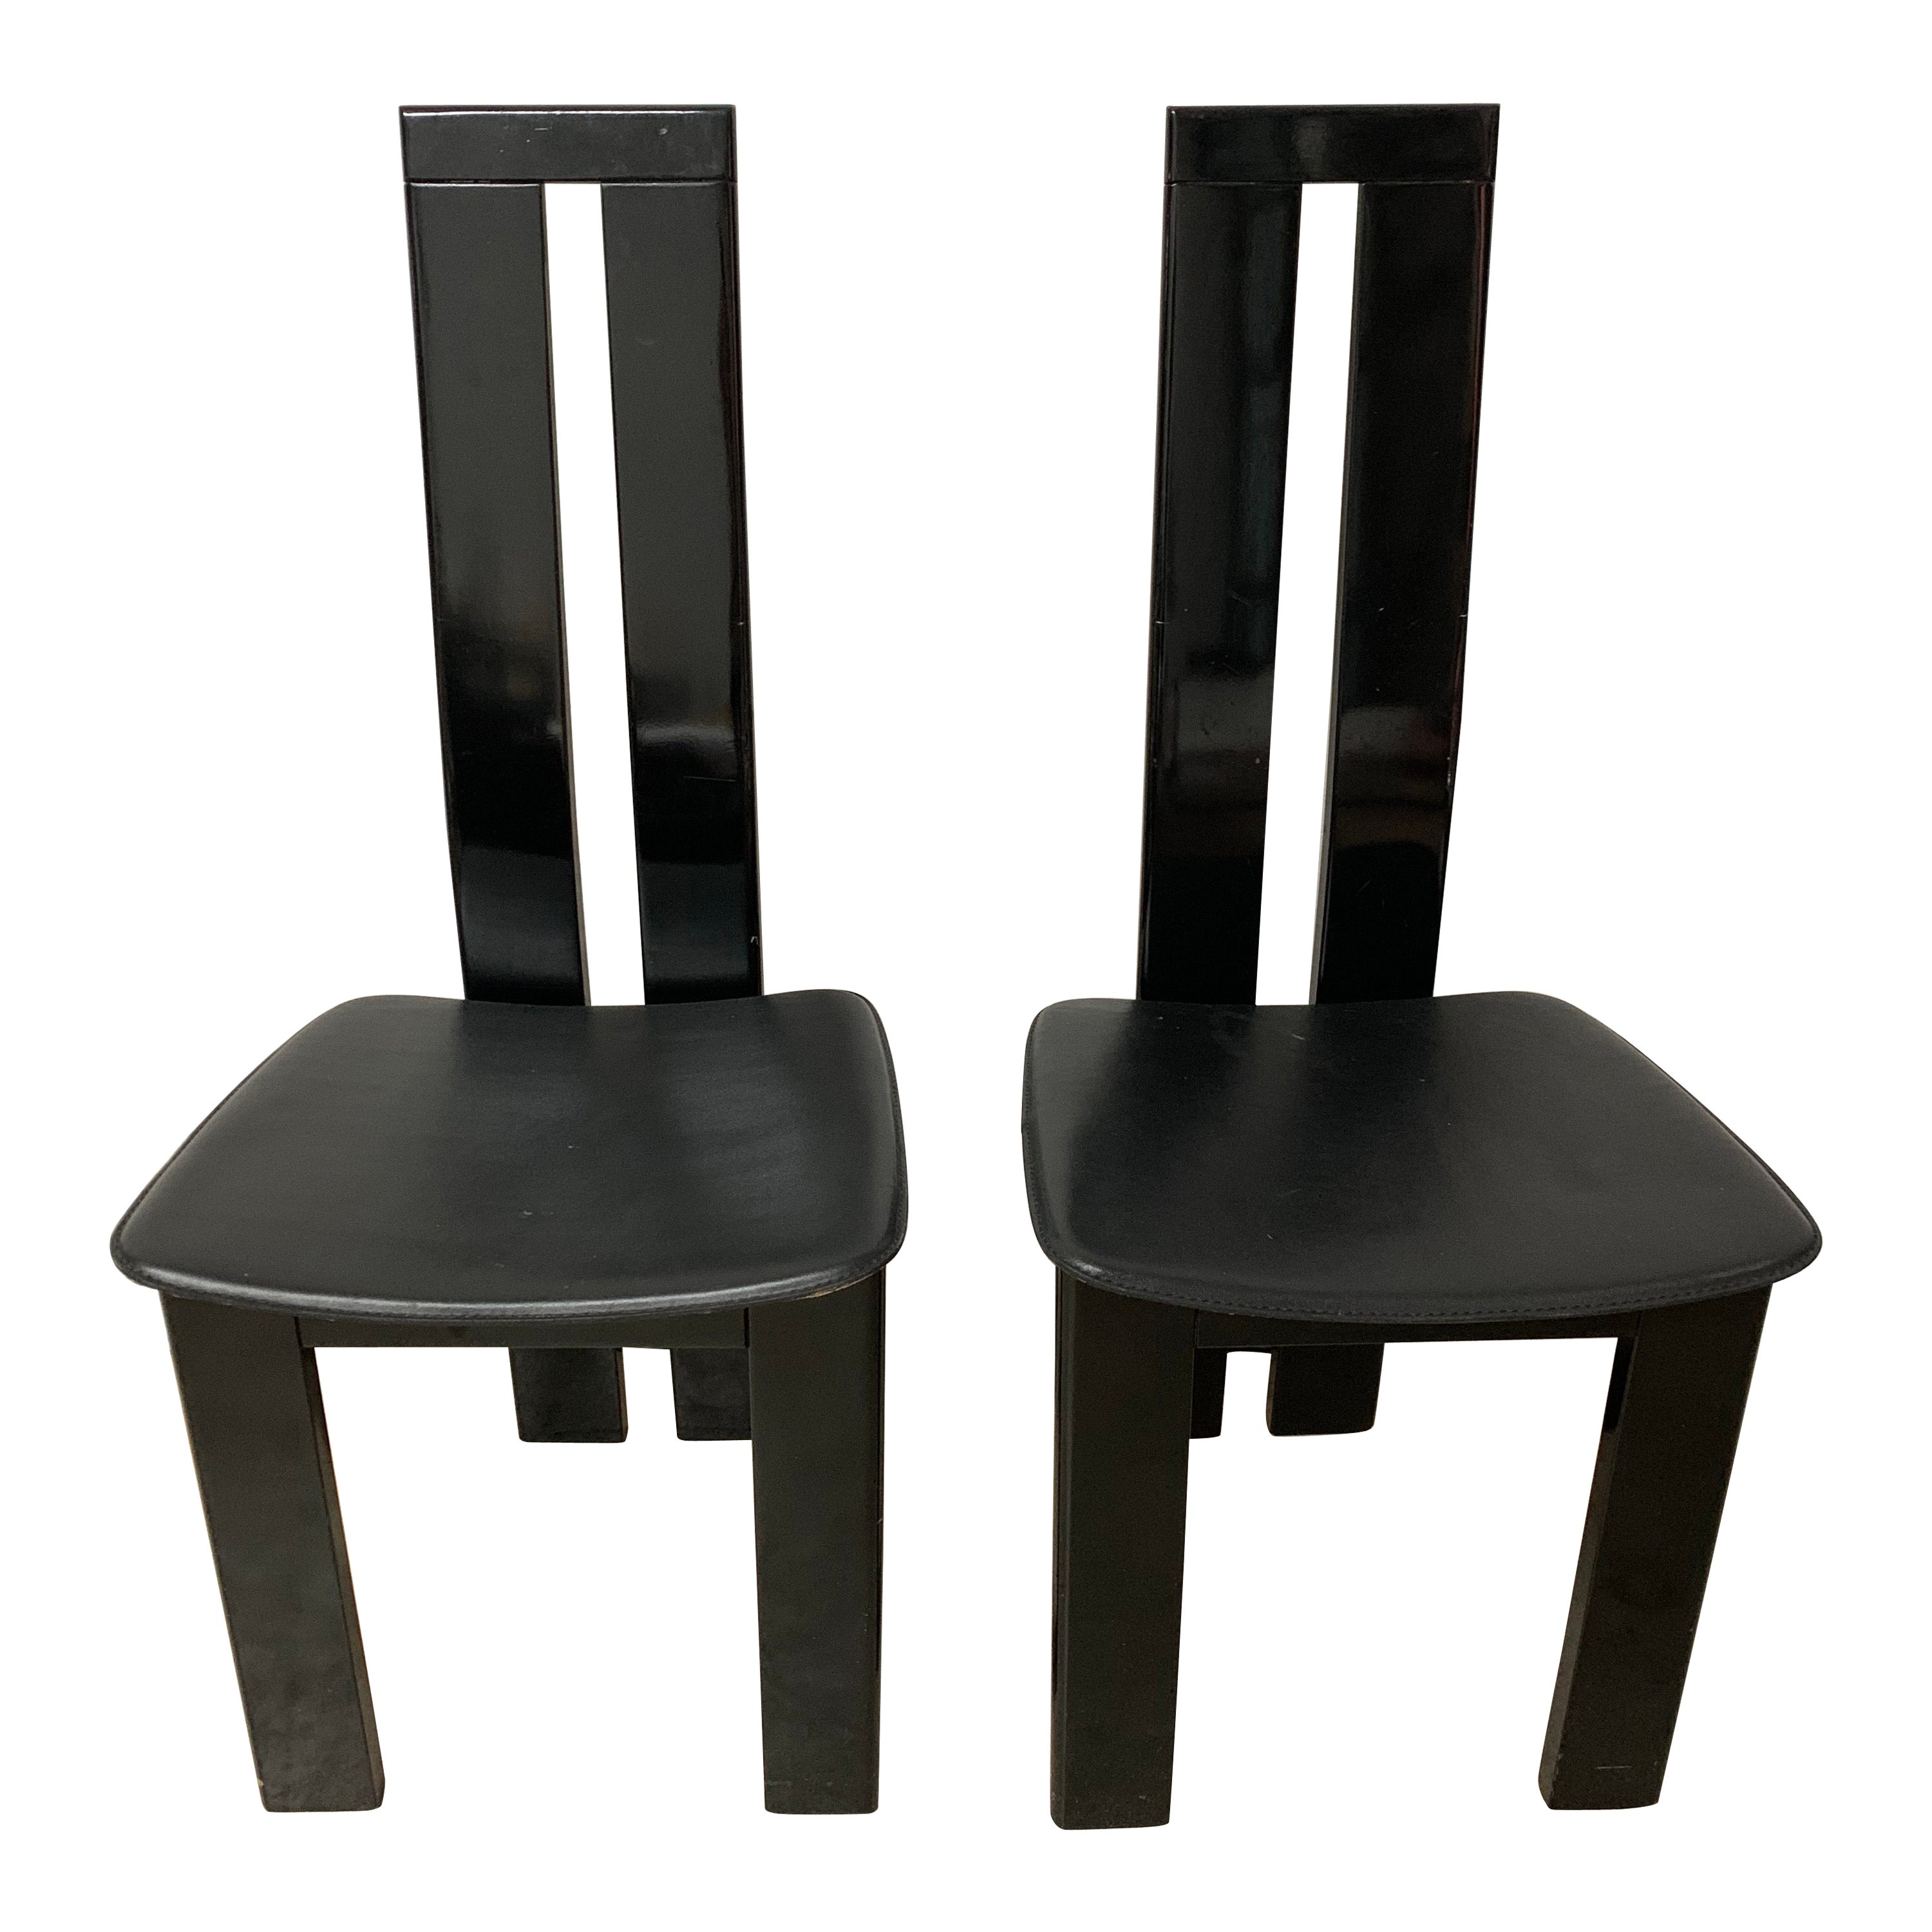 Pair of Italian Postmodern Chairs by Massimo Vignelli